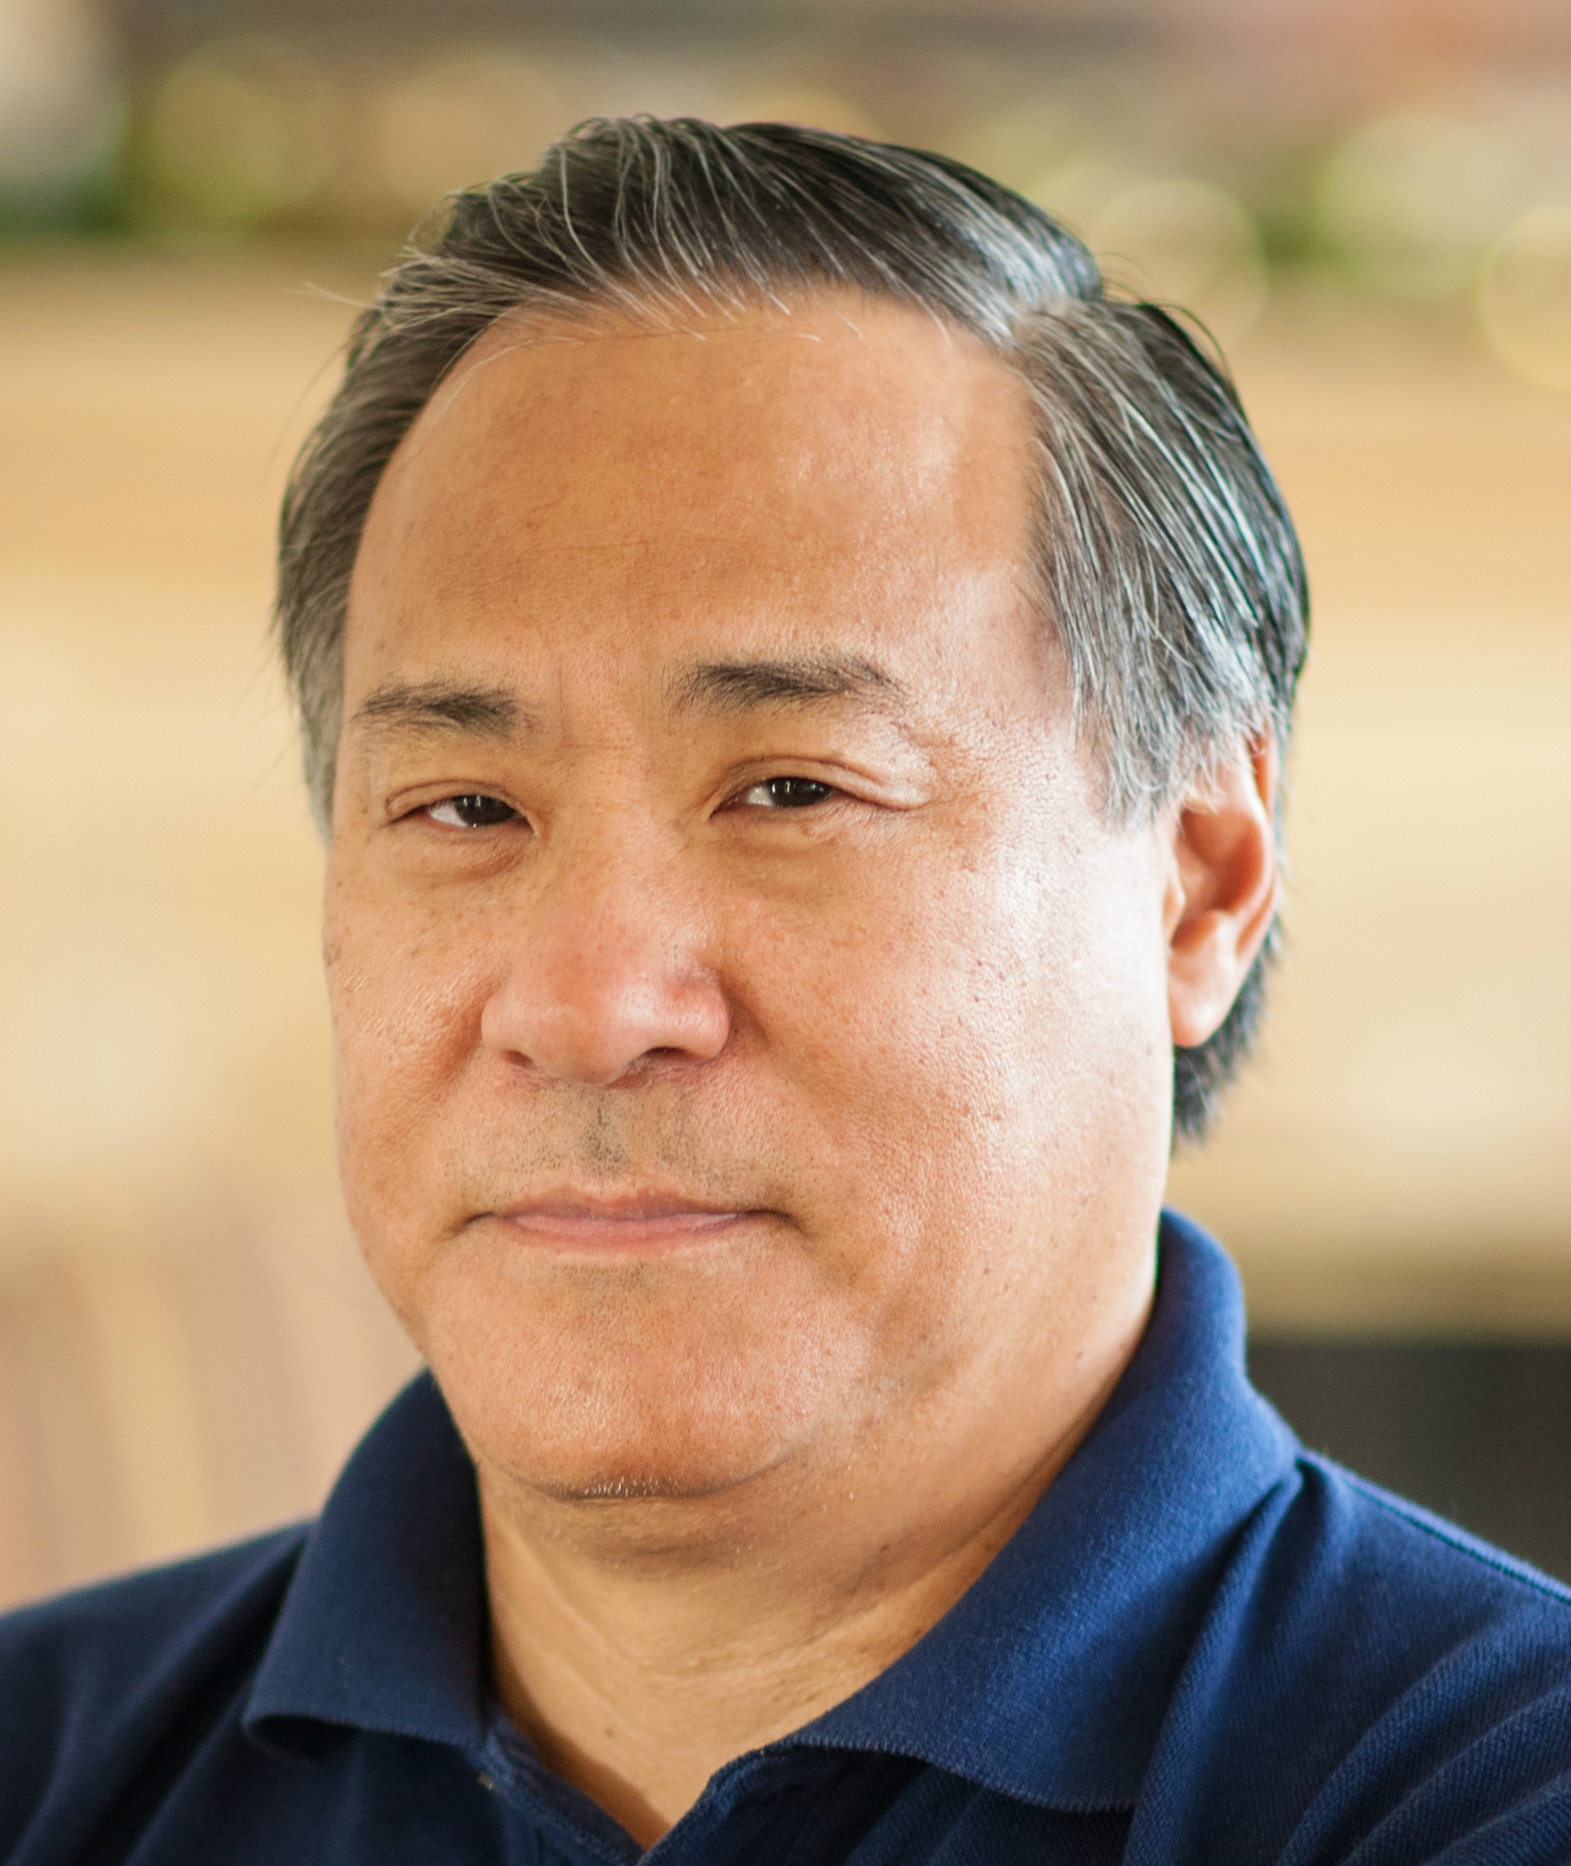 Alan Wu headshot